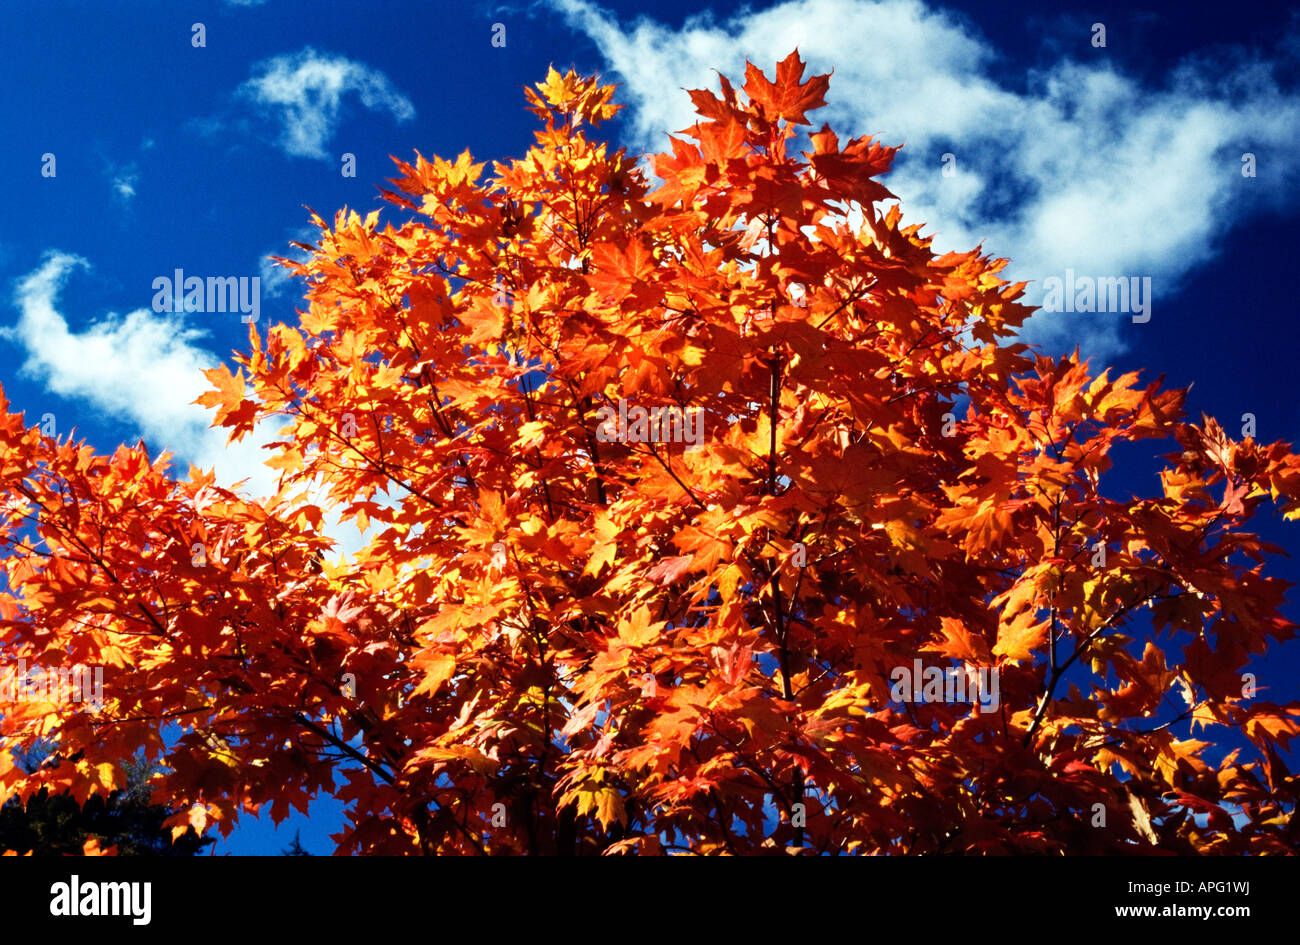 Fall colored leaves on a tree - Stock Image